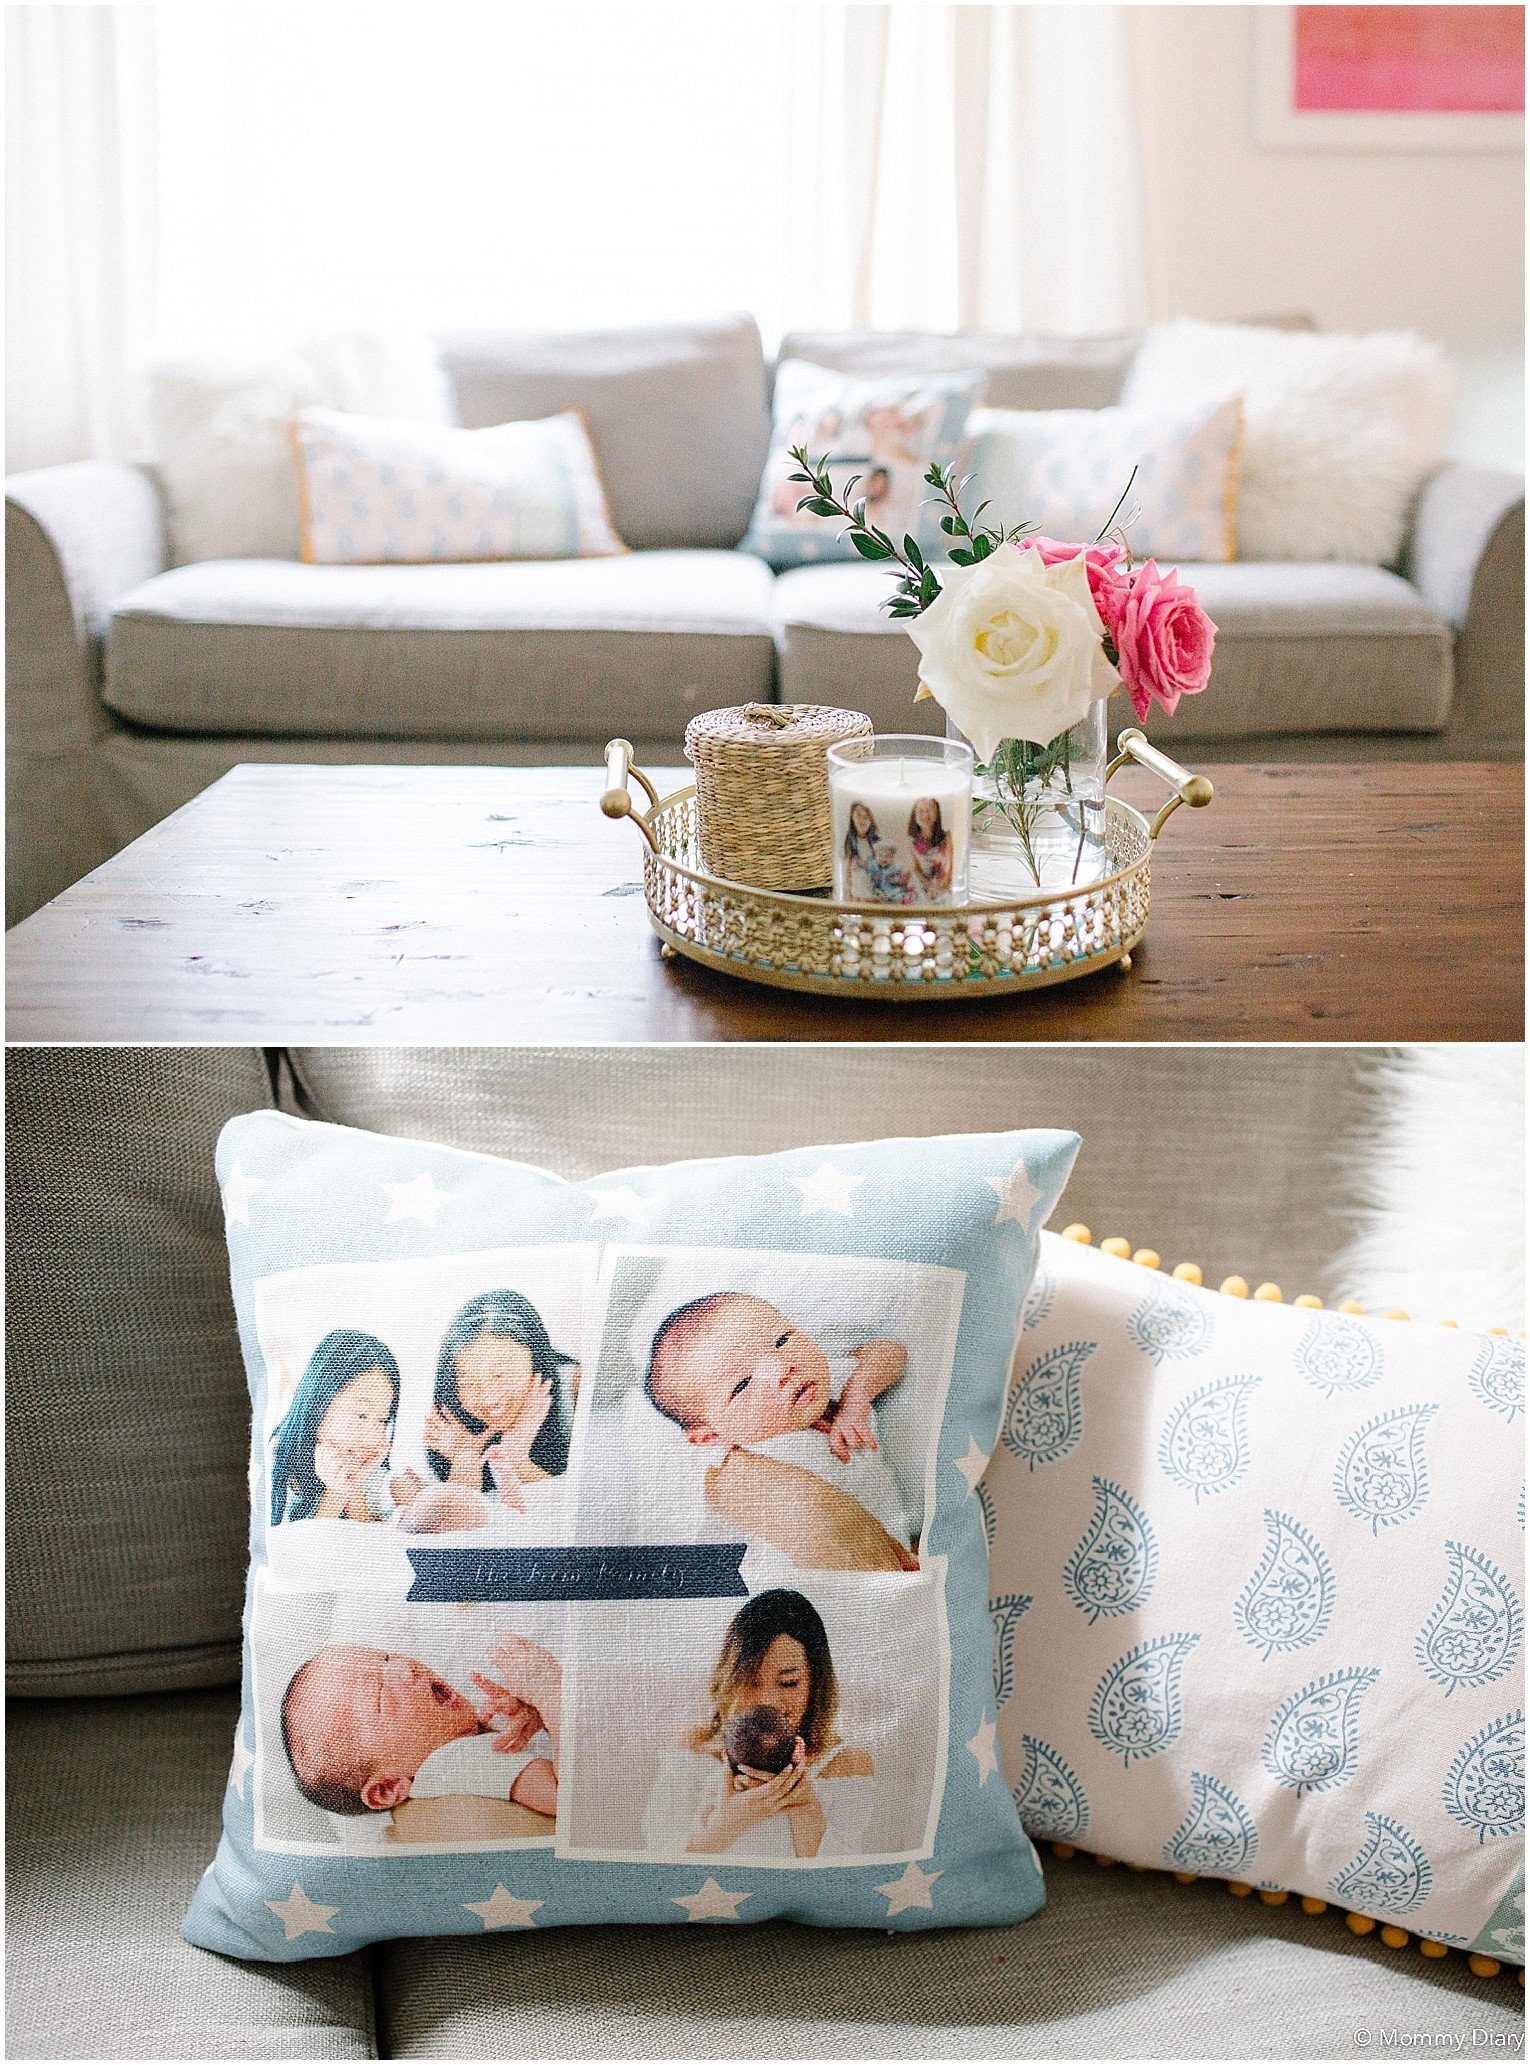 Shutterfly Home Decor Pillow Candle